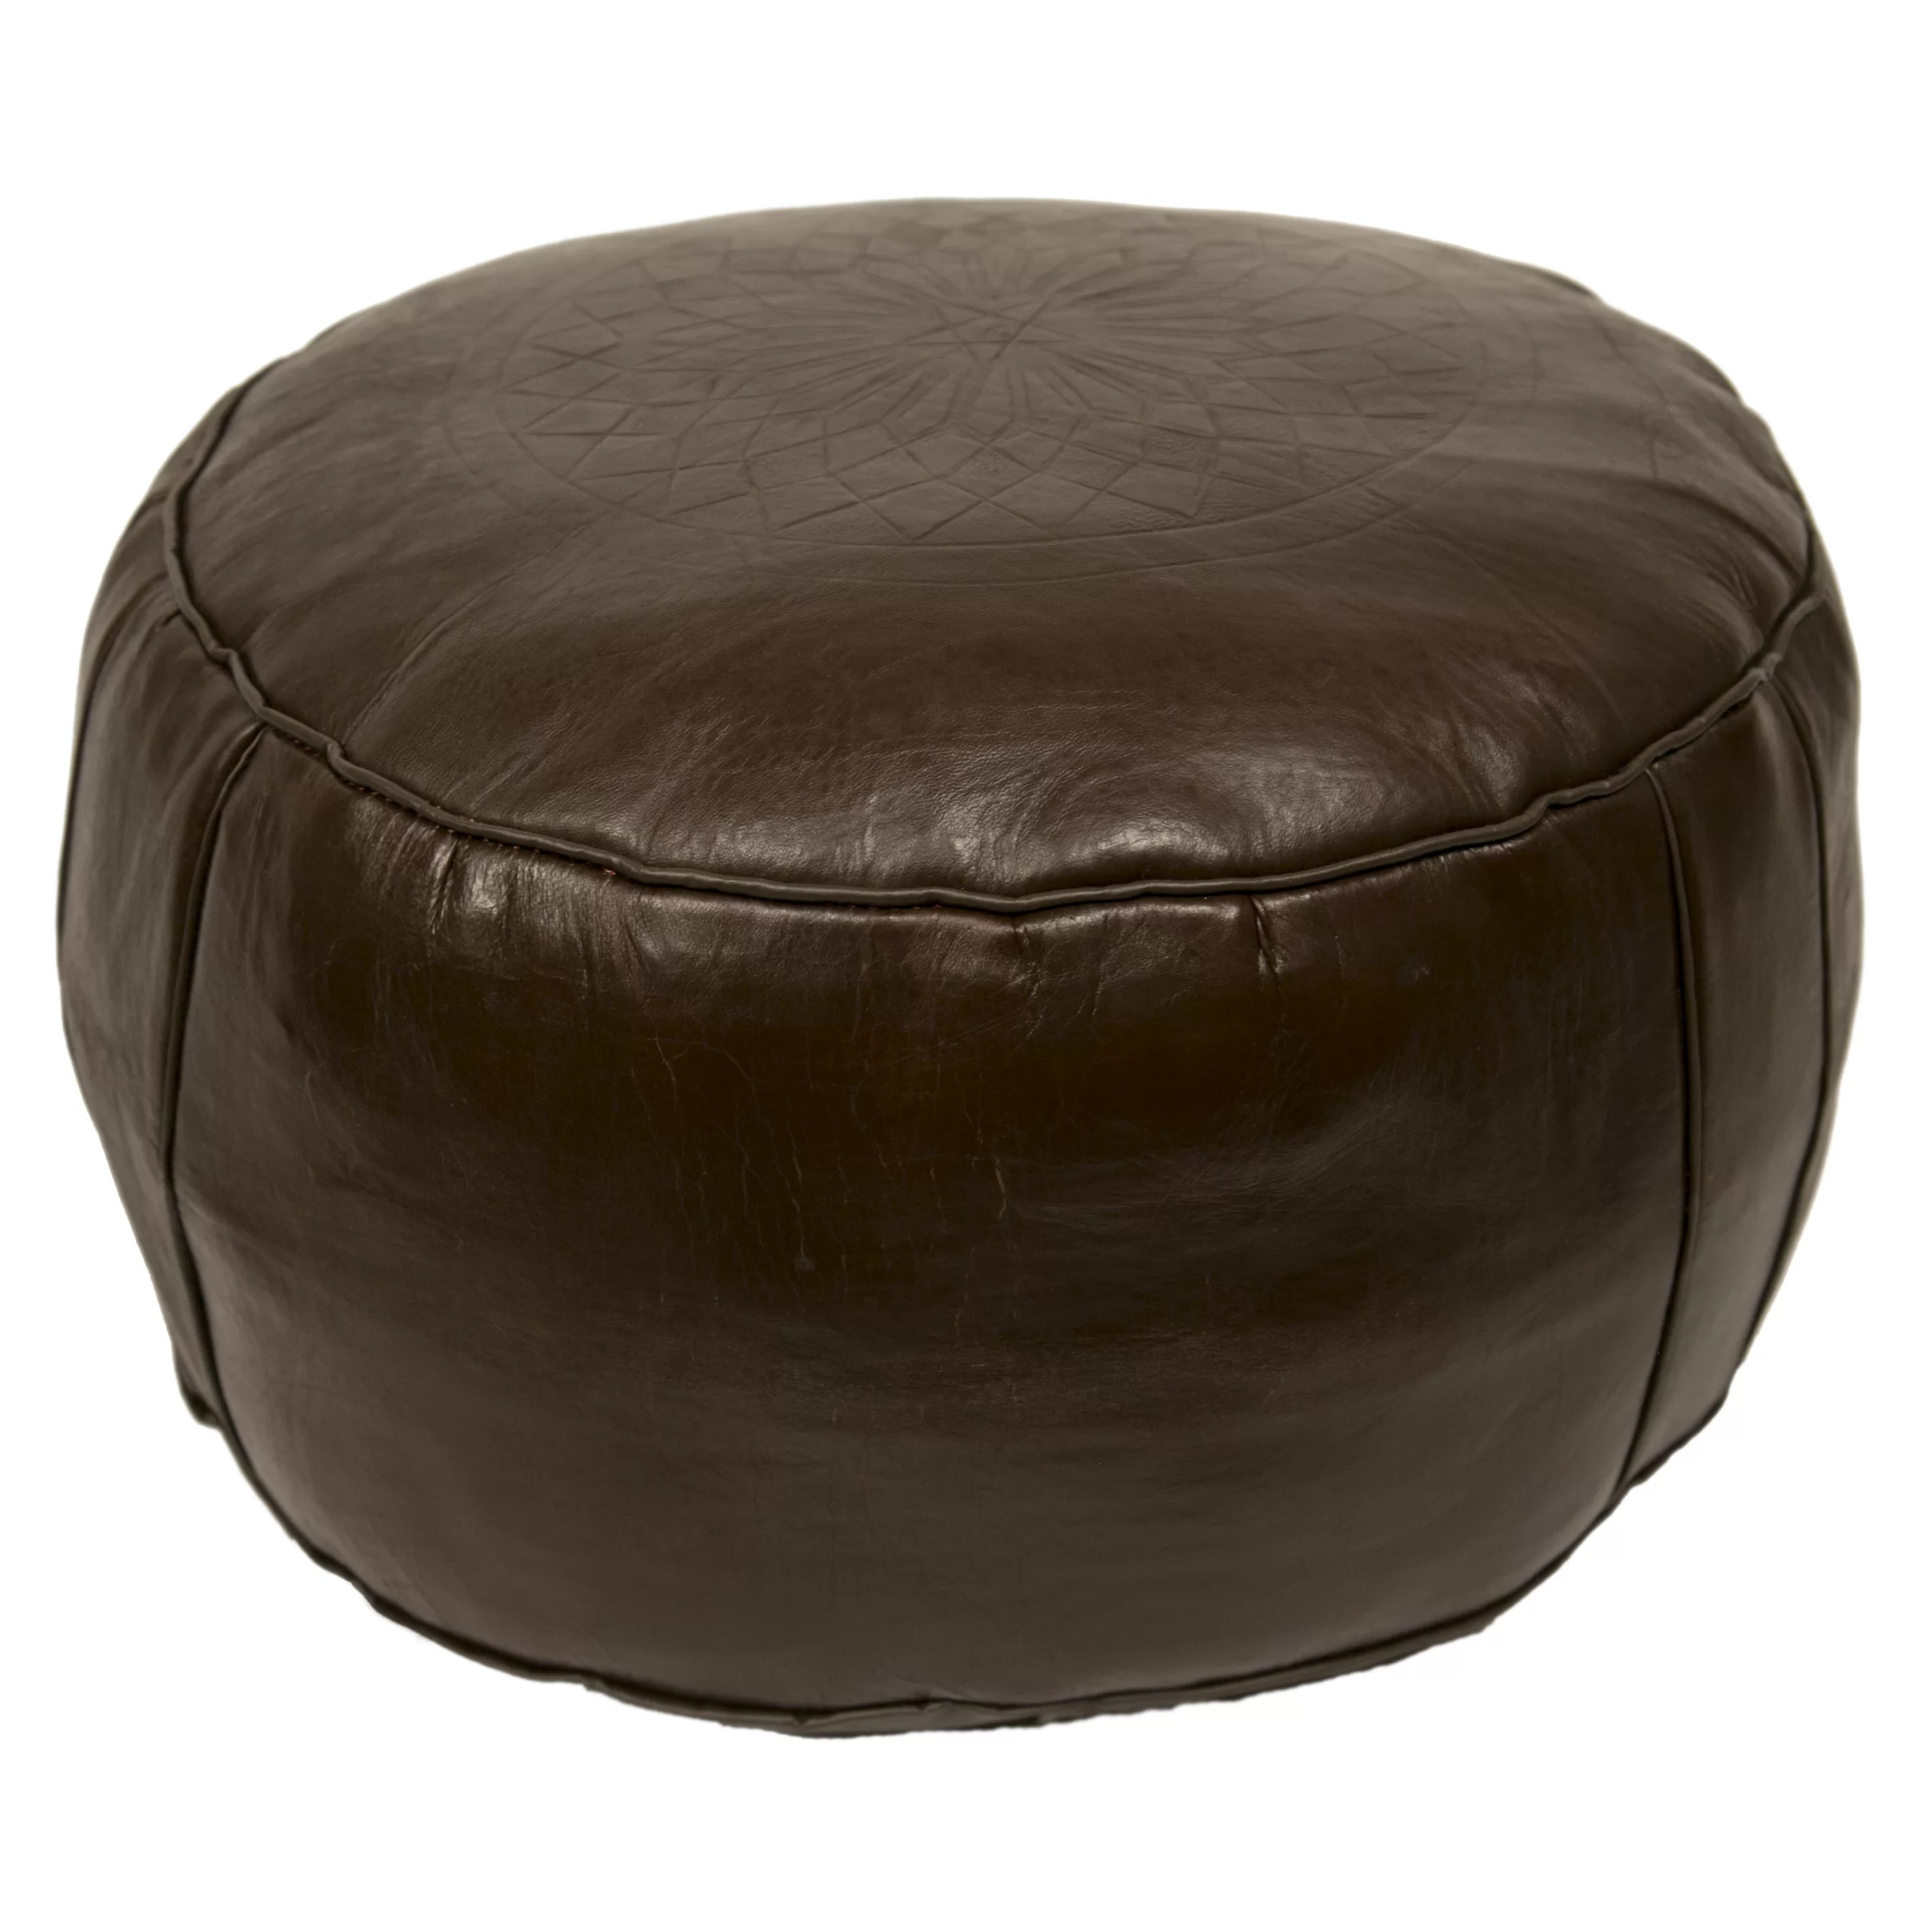 Pouf Chair Casablanca Market Moroccan Leather Pouf Ottoman Iii